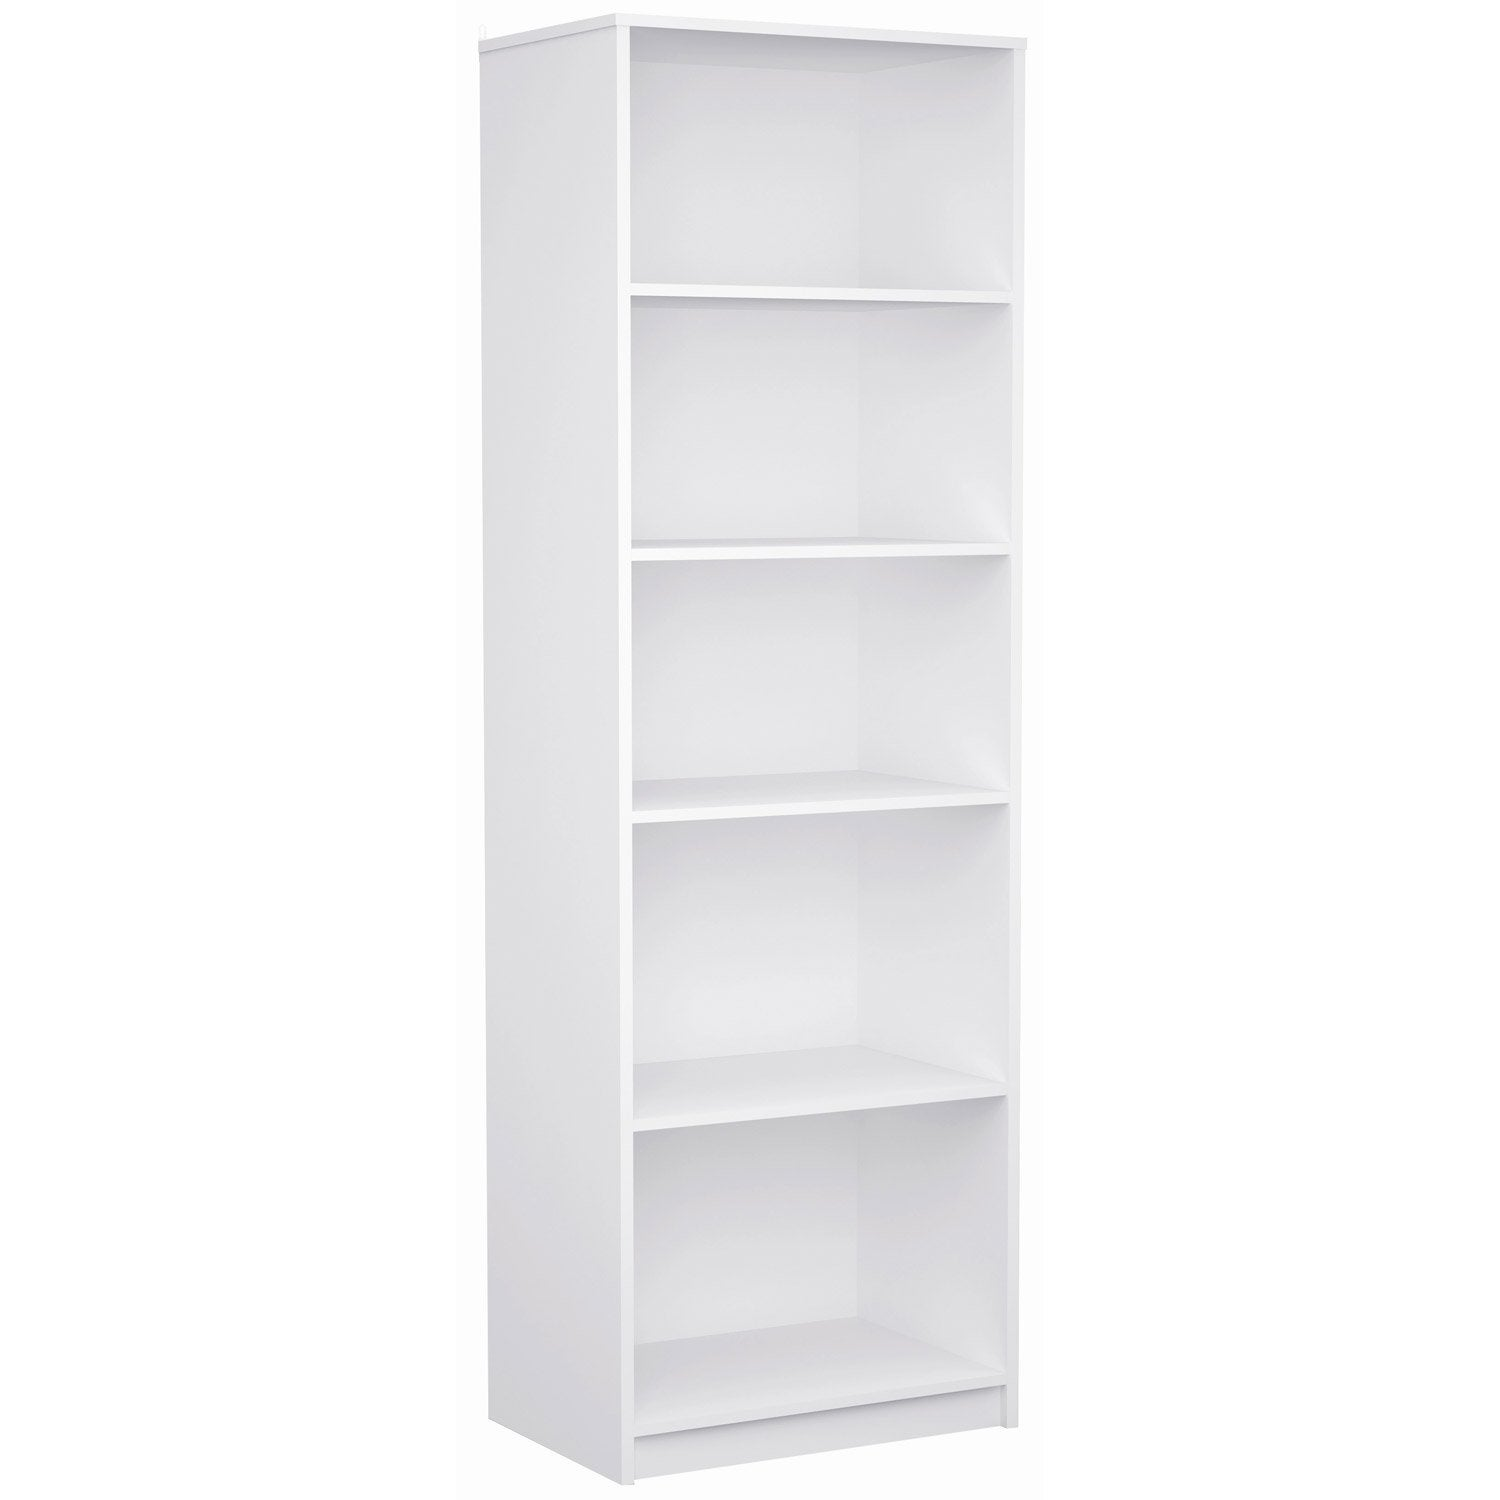 Colonne spaceo dressing 61x186x40 cm blanc leroy merlin - Colonne dressing 40 cm ...